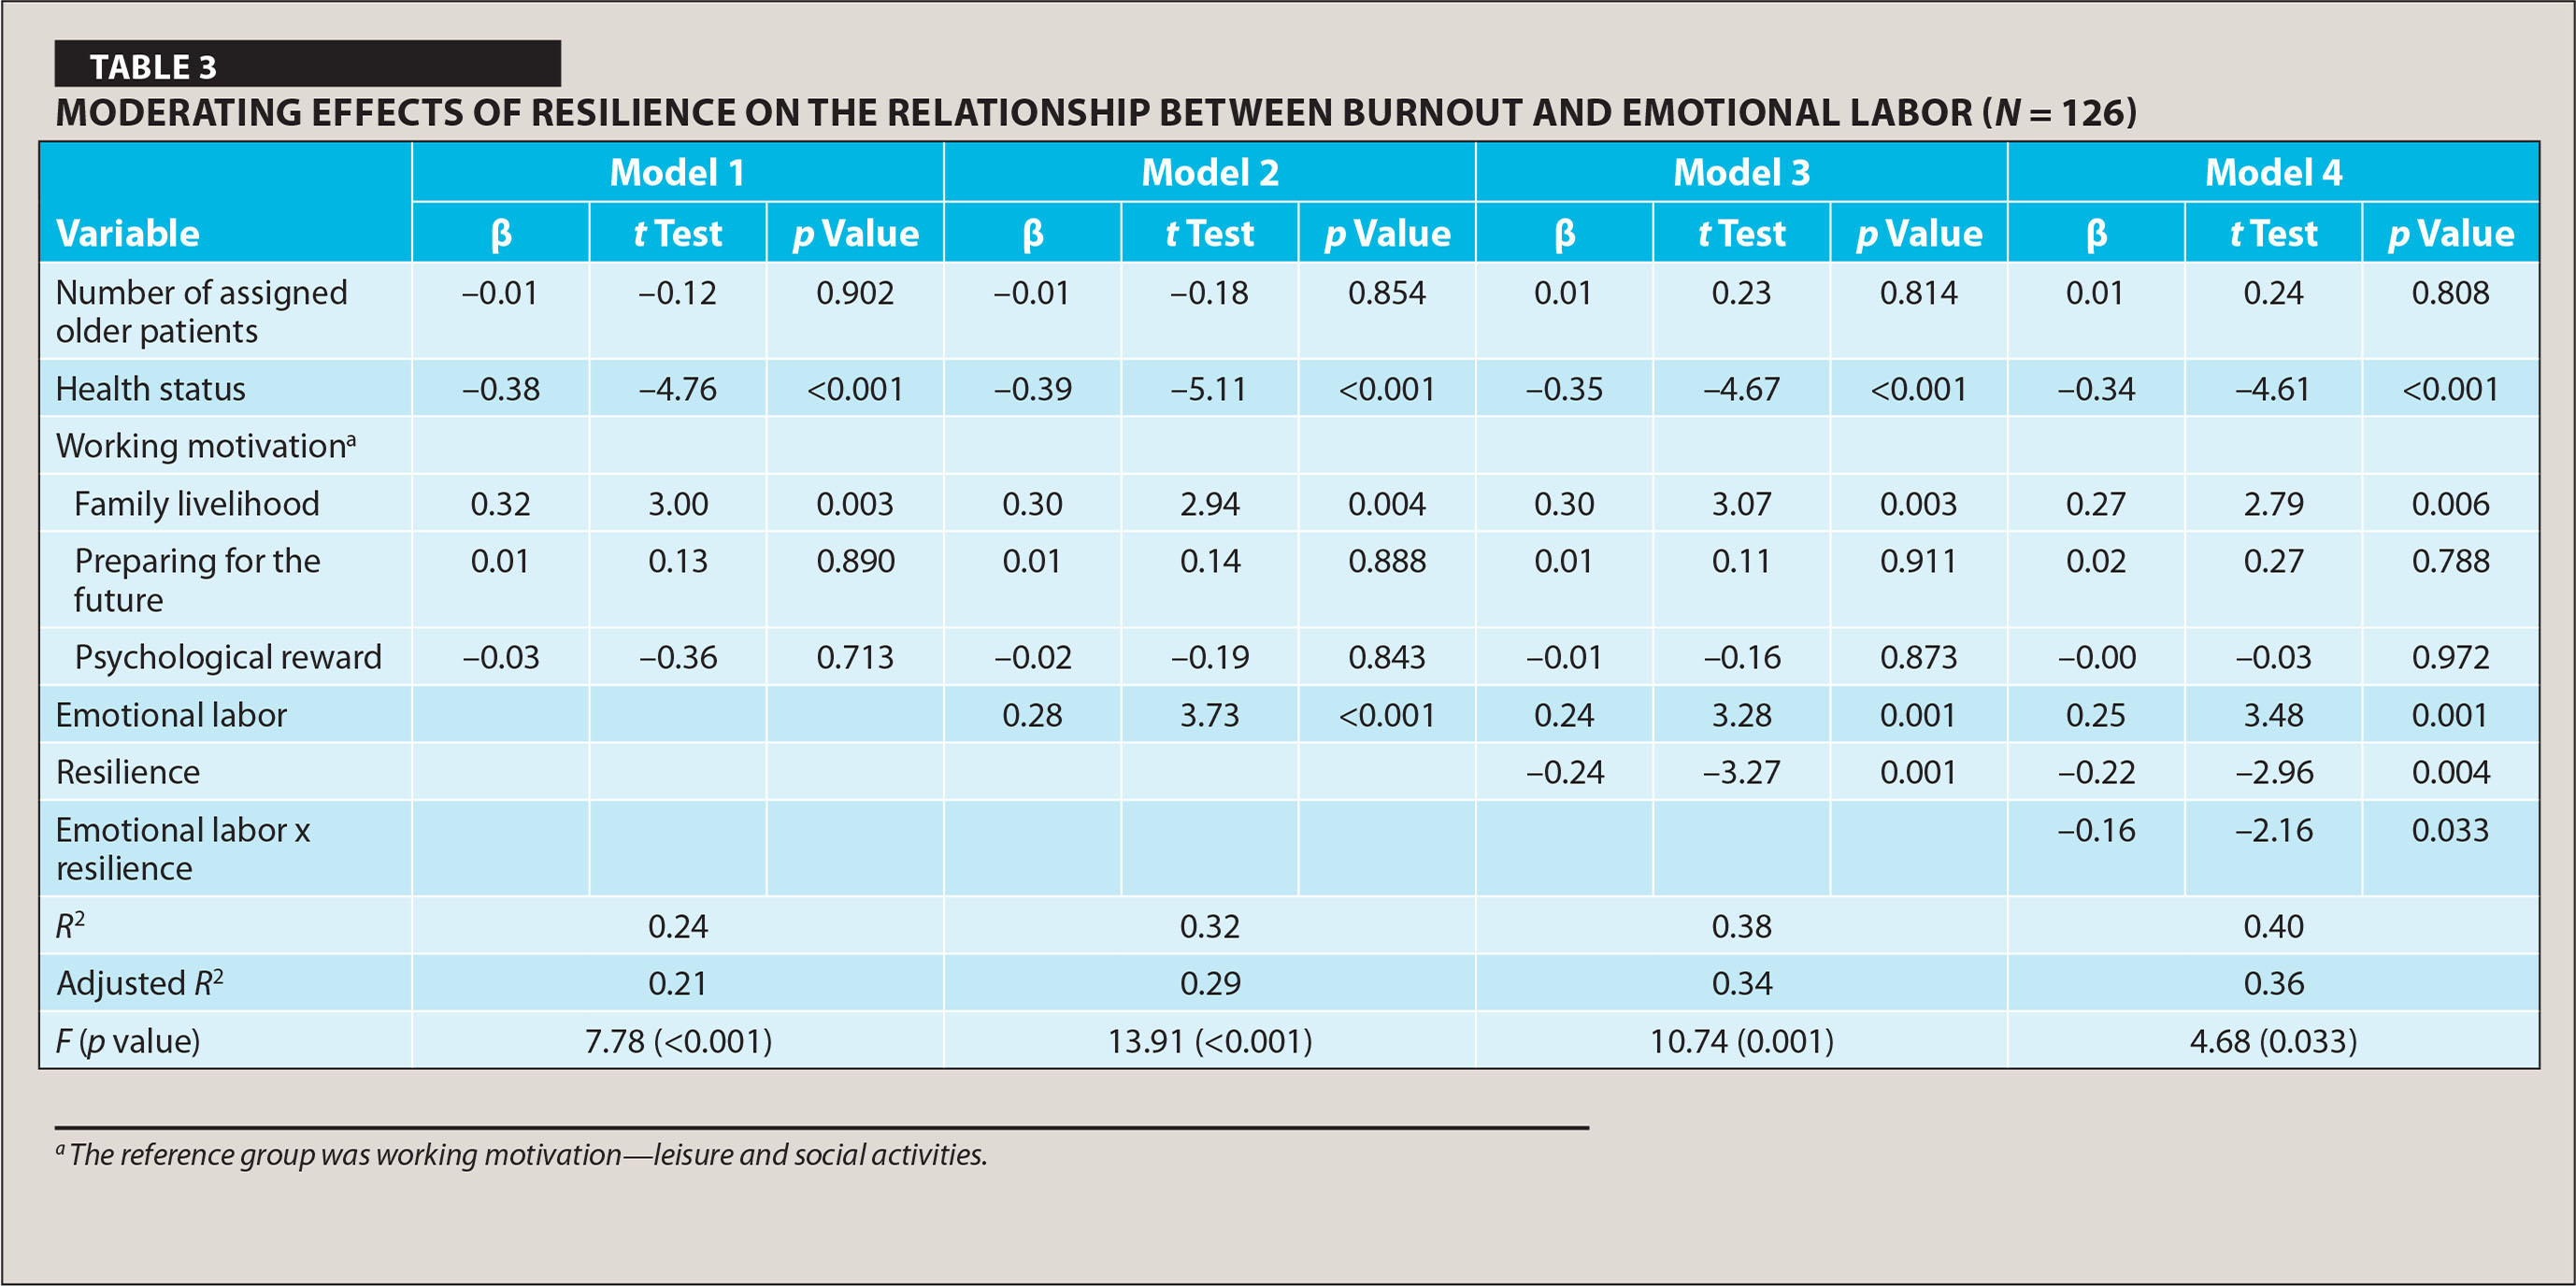 Moderating Effects of Resilience on the Relationship between Burnout and Emotional Labor (N= 126)